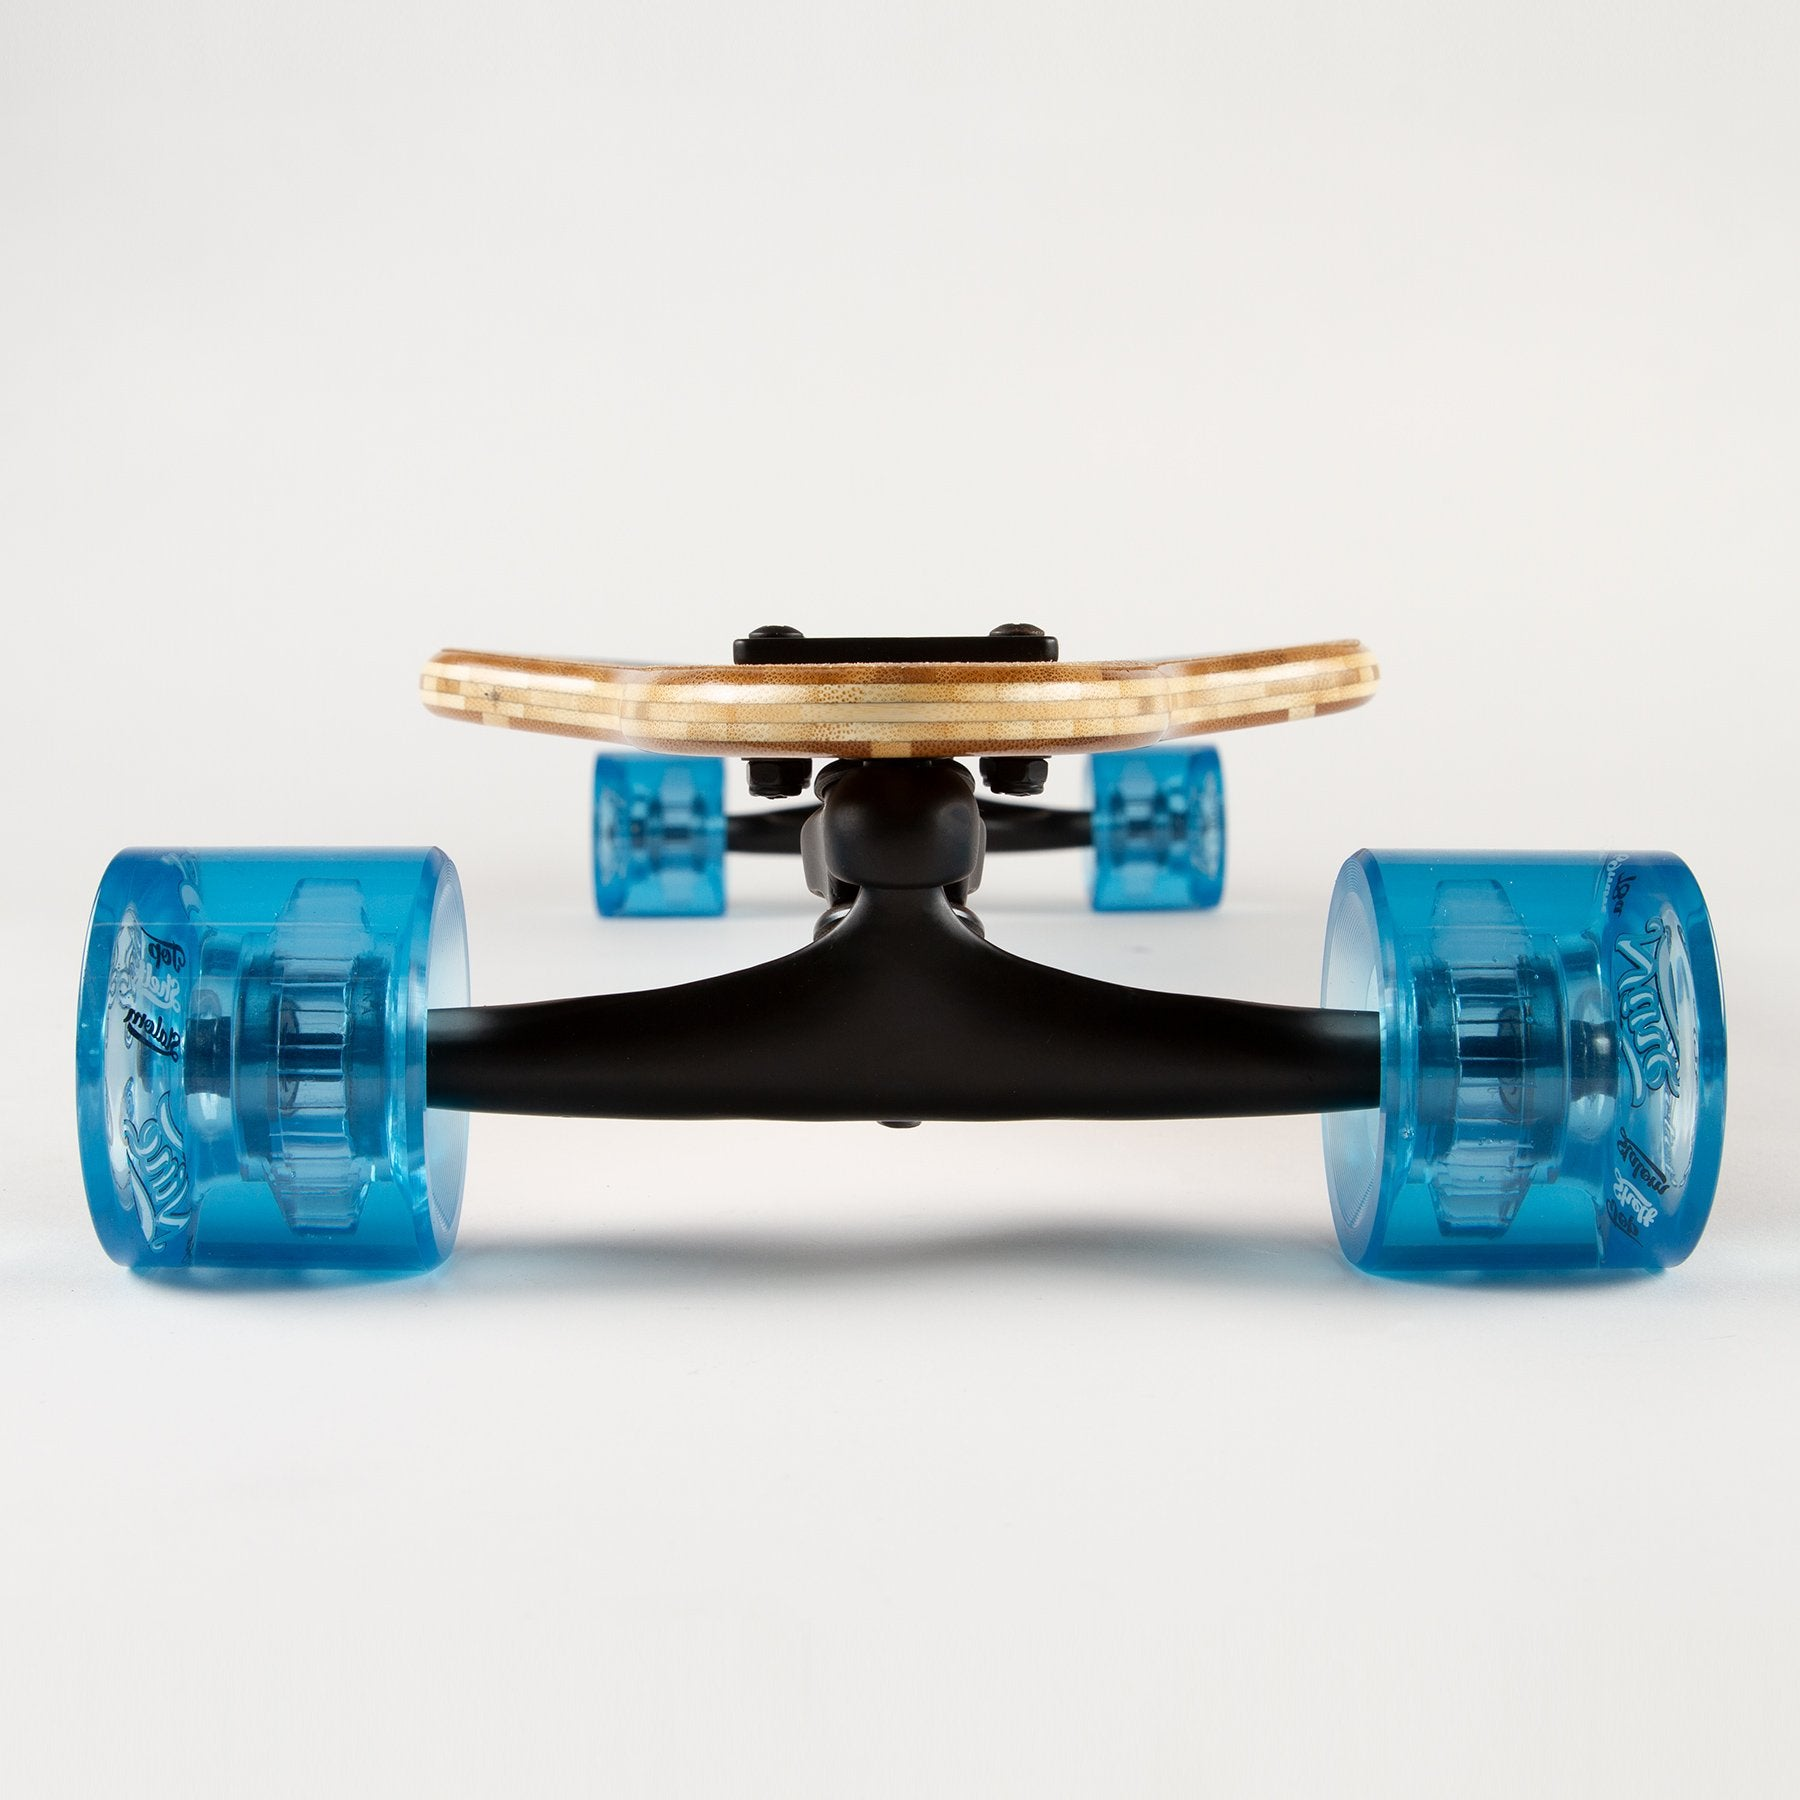 "Sector 9 Bico Shoots 33.5"" Complete"